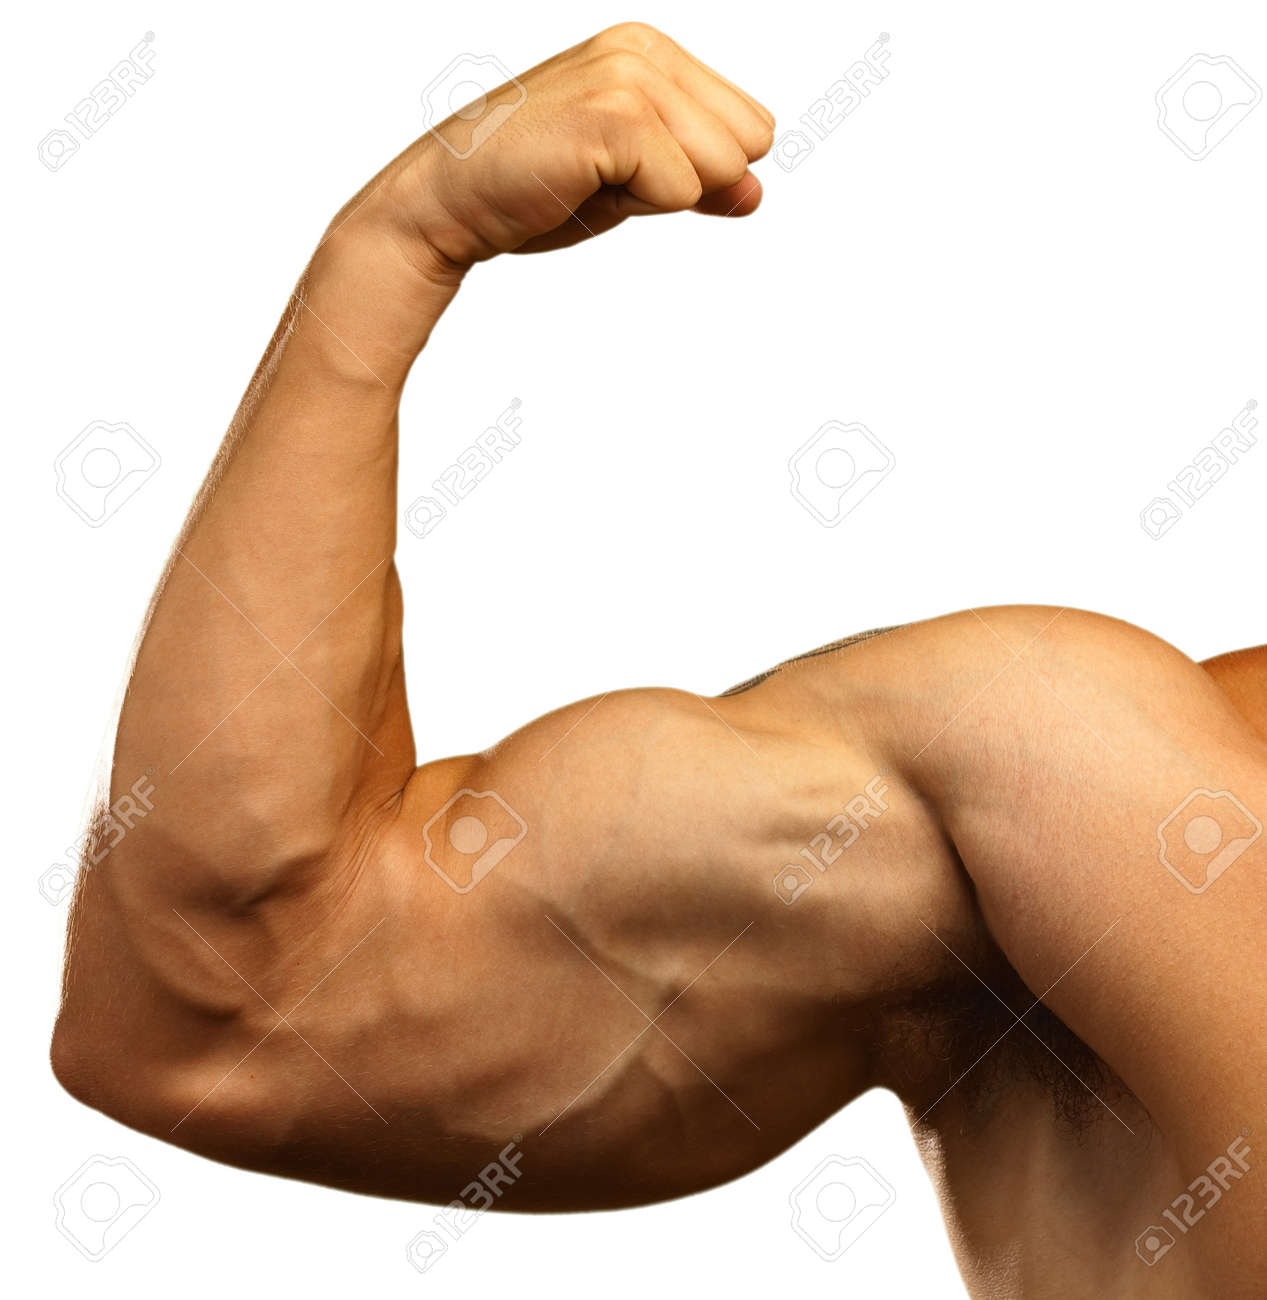 10364377-strong-biceps-on-a-white-backgr